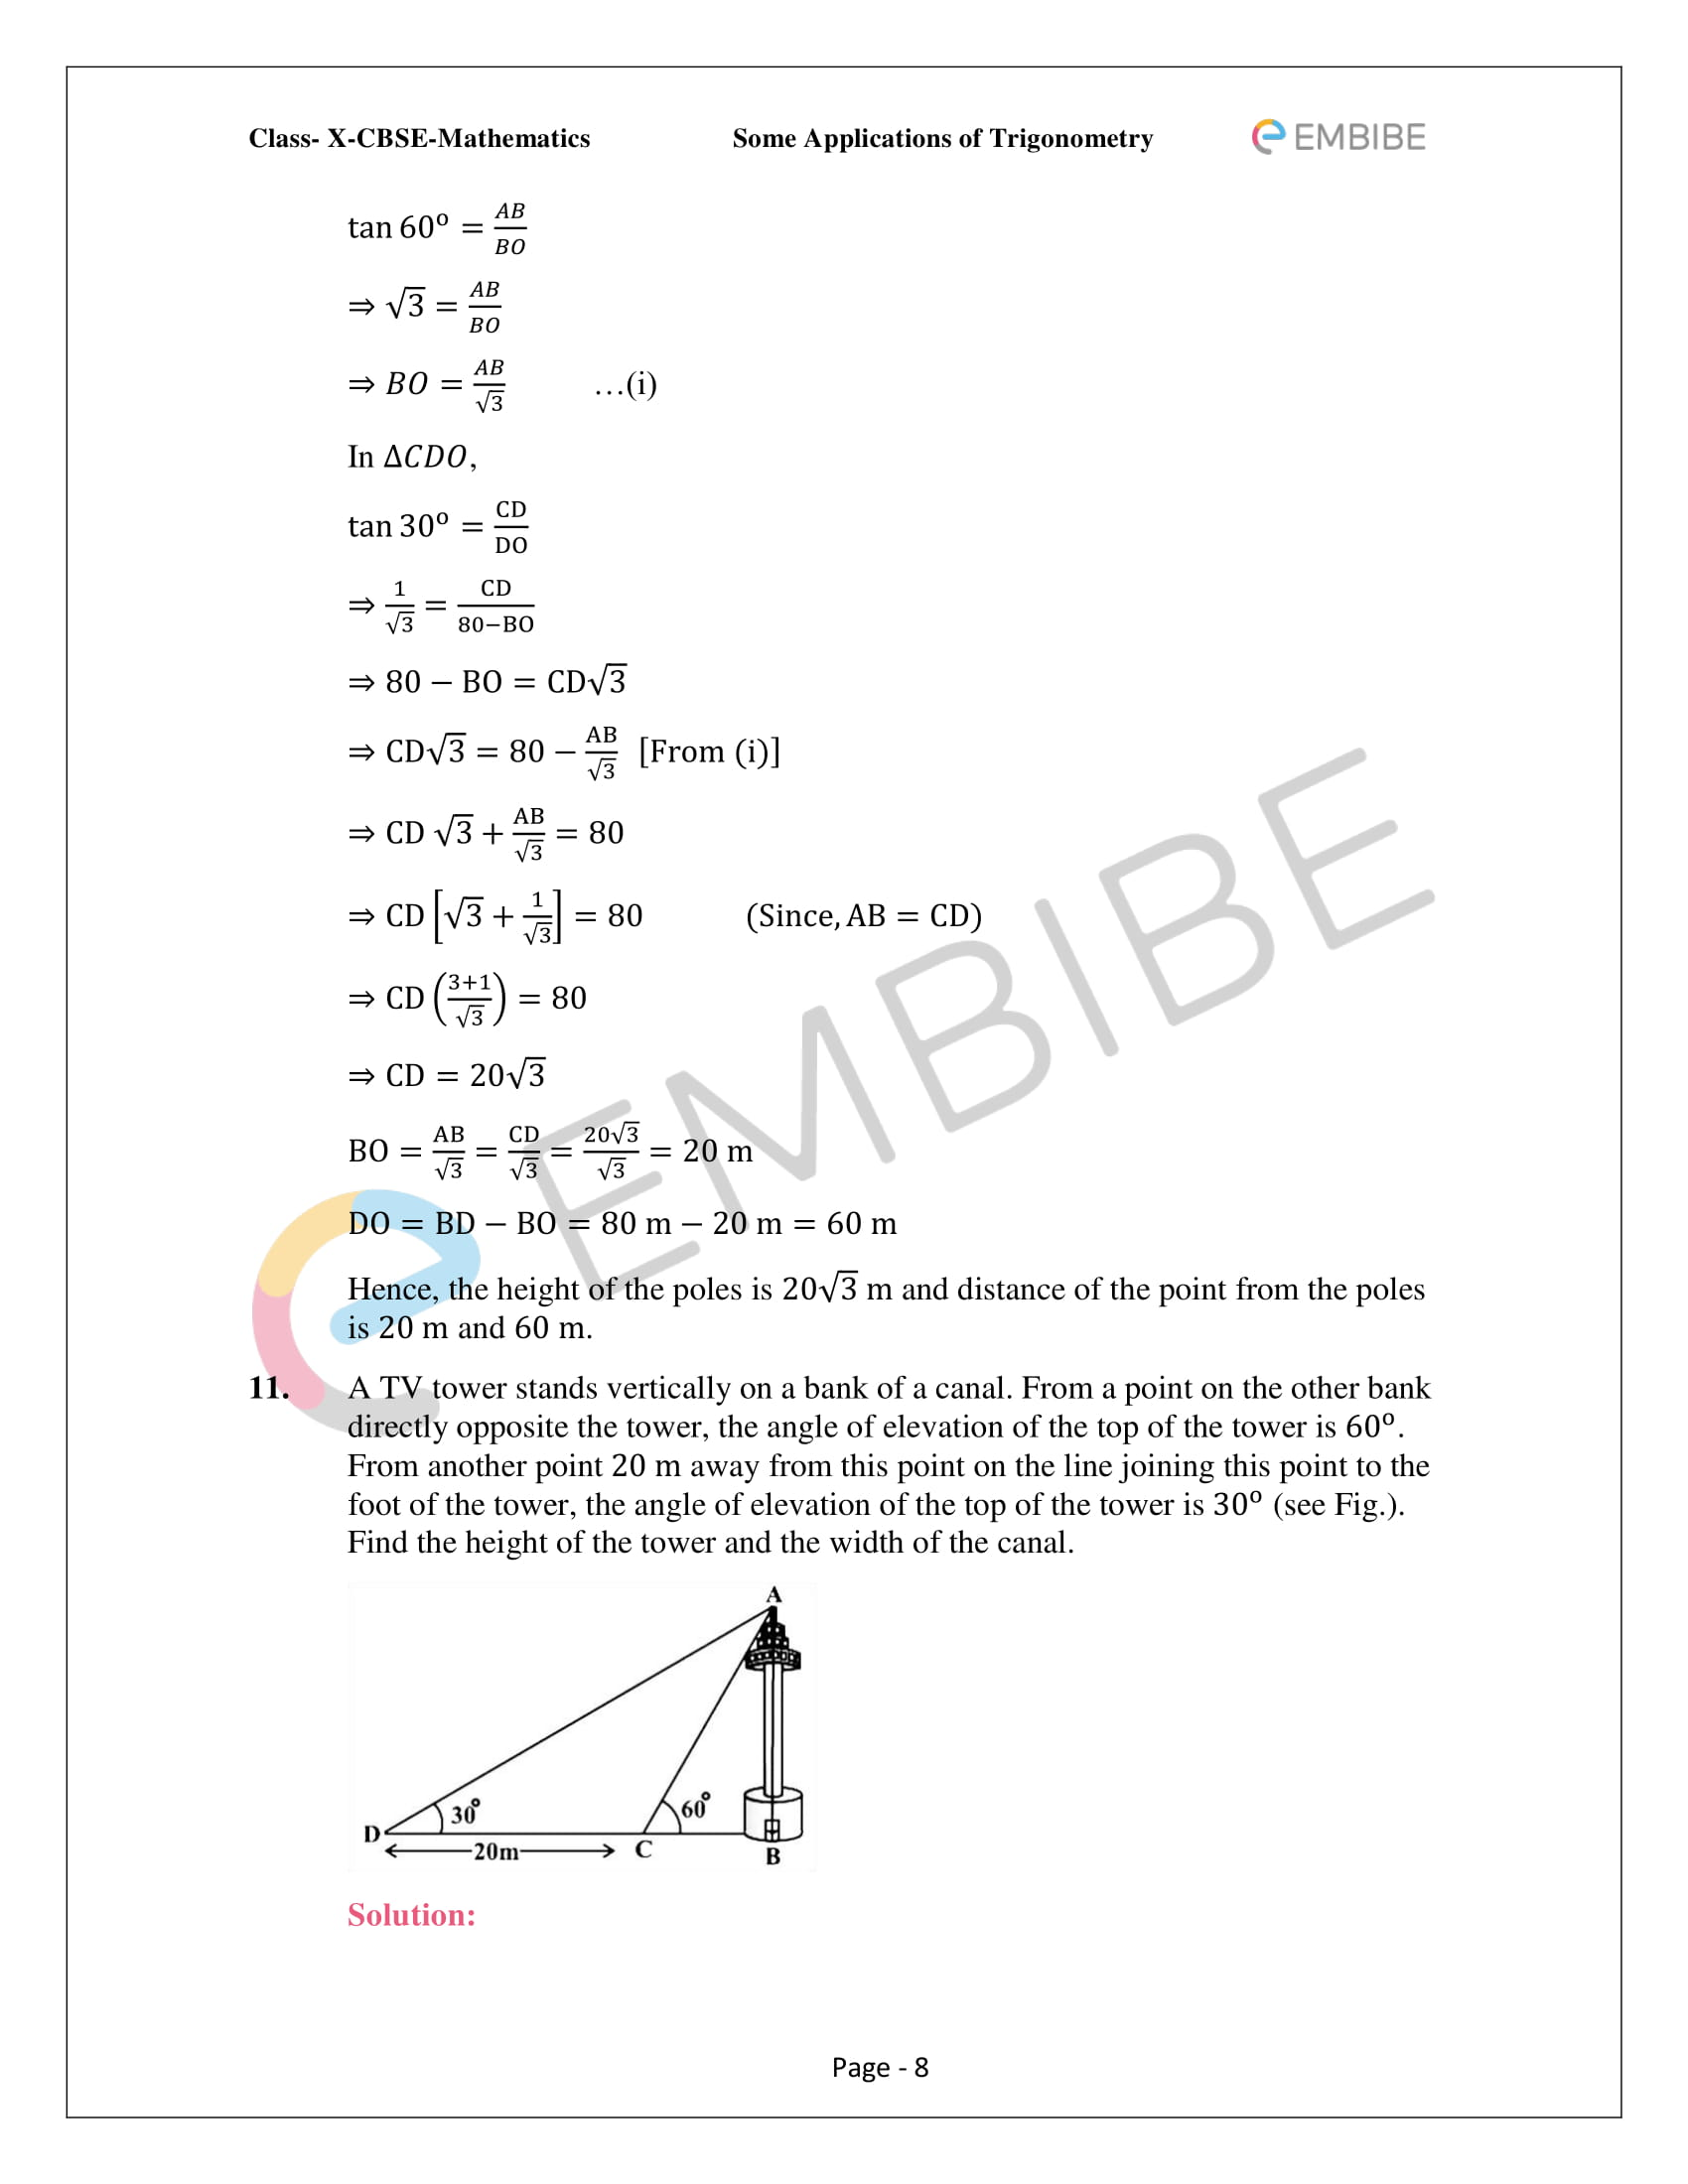 CBSE NCERT Solutions For Class 10 Maths Chapter 9 –Introduction To Trigonometry - 8